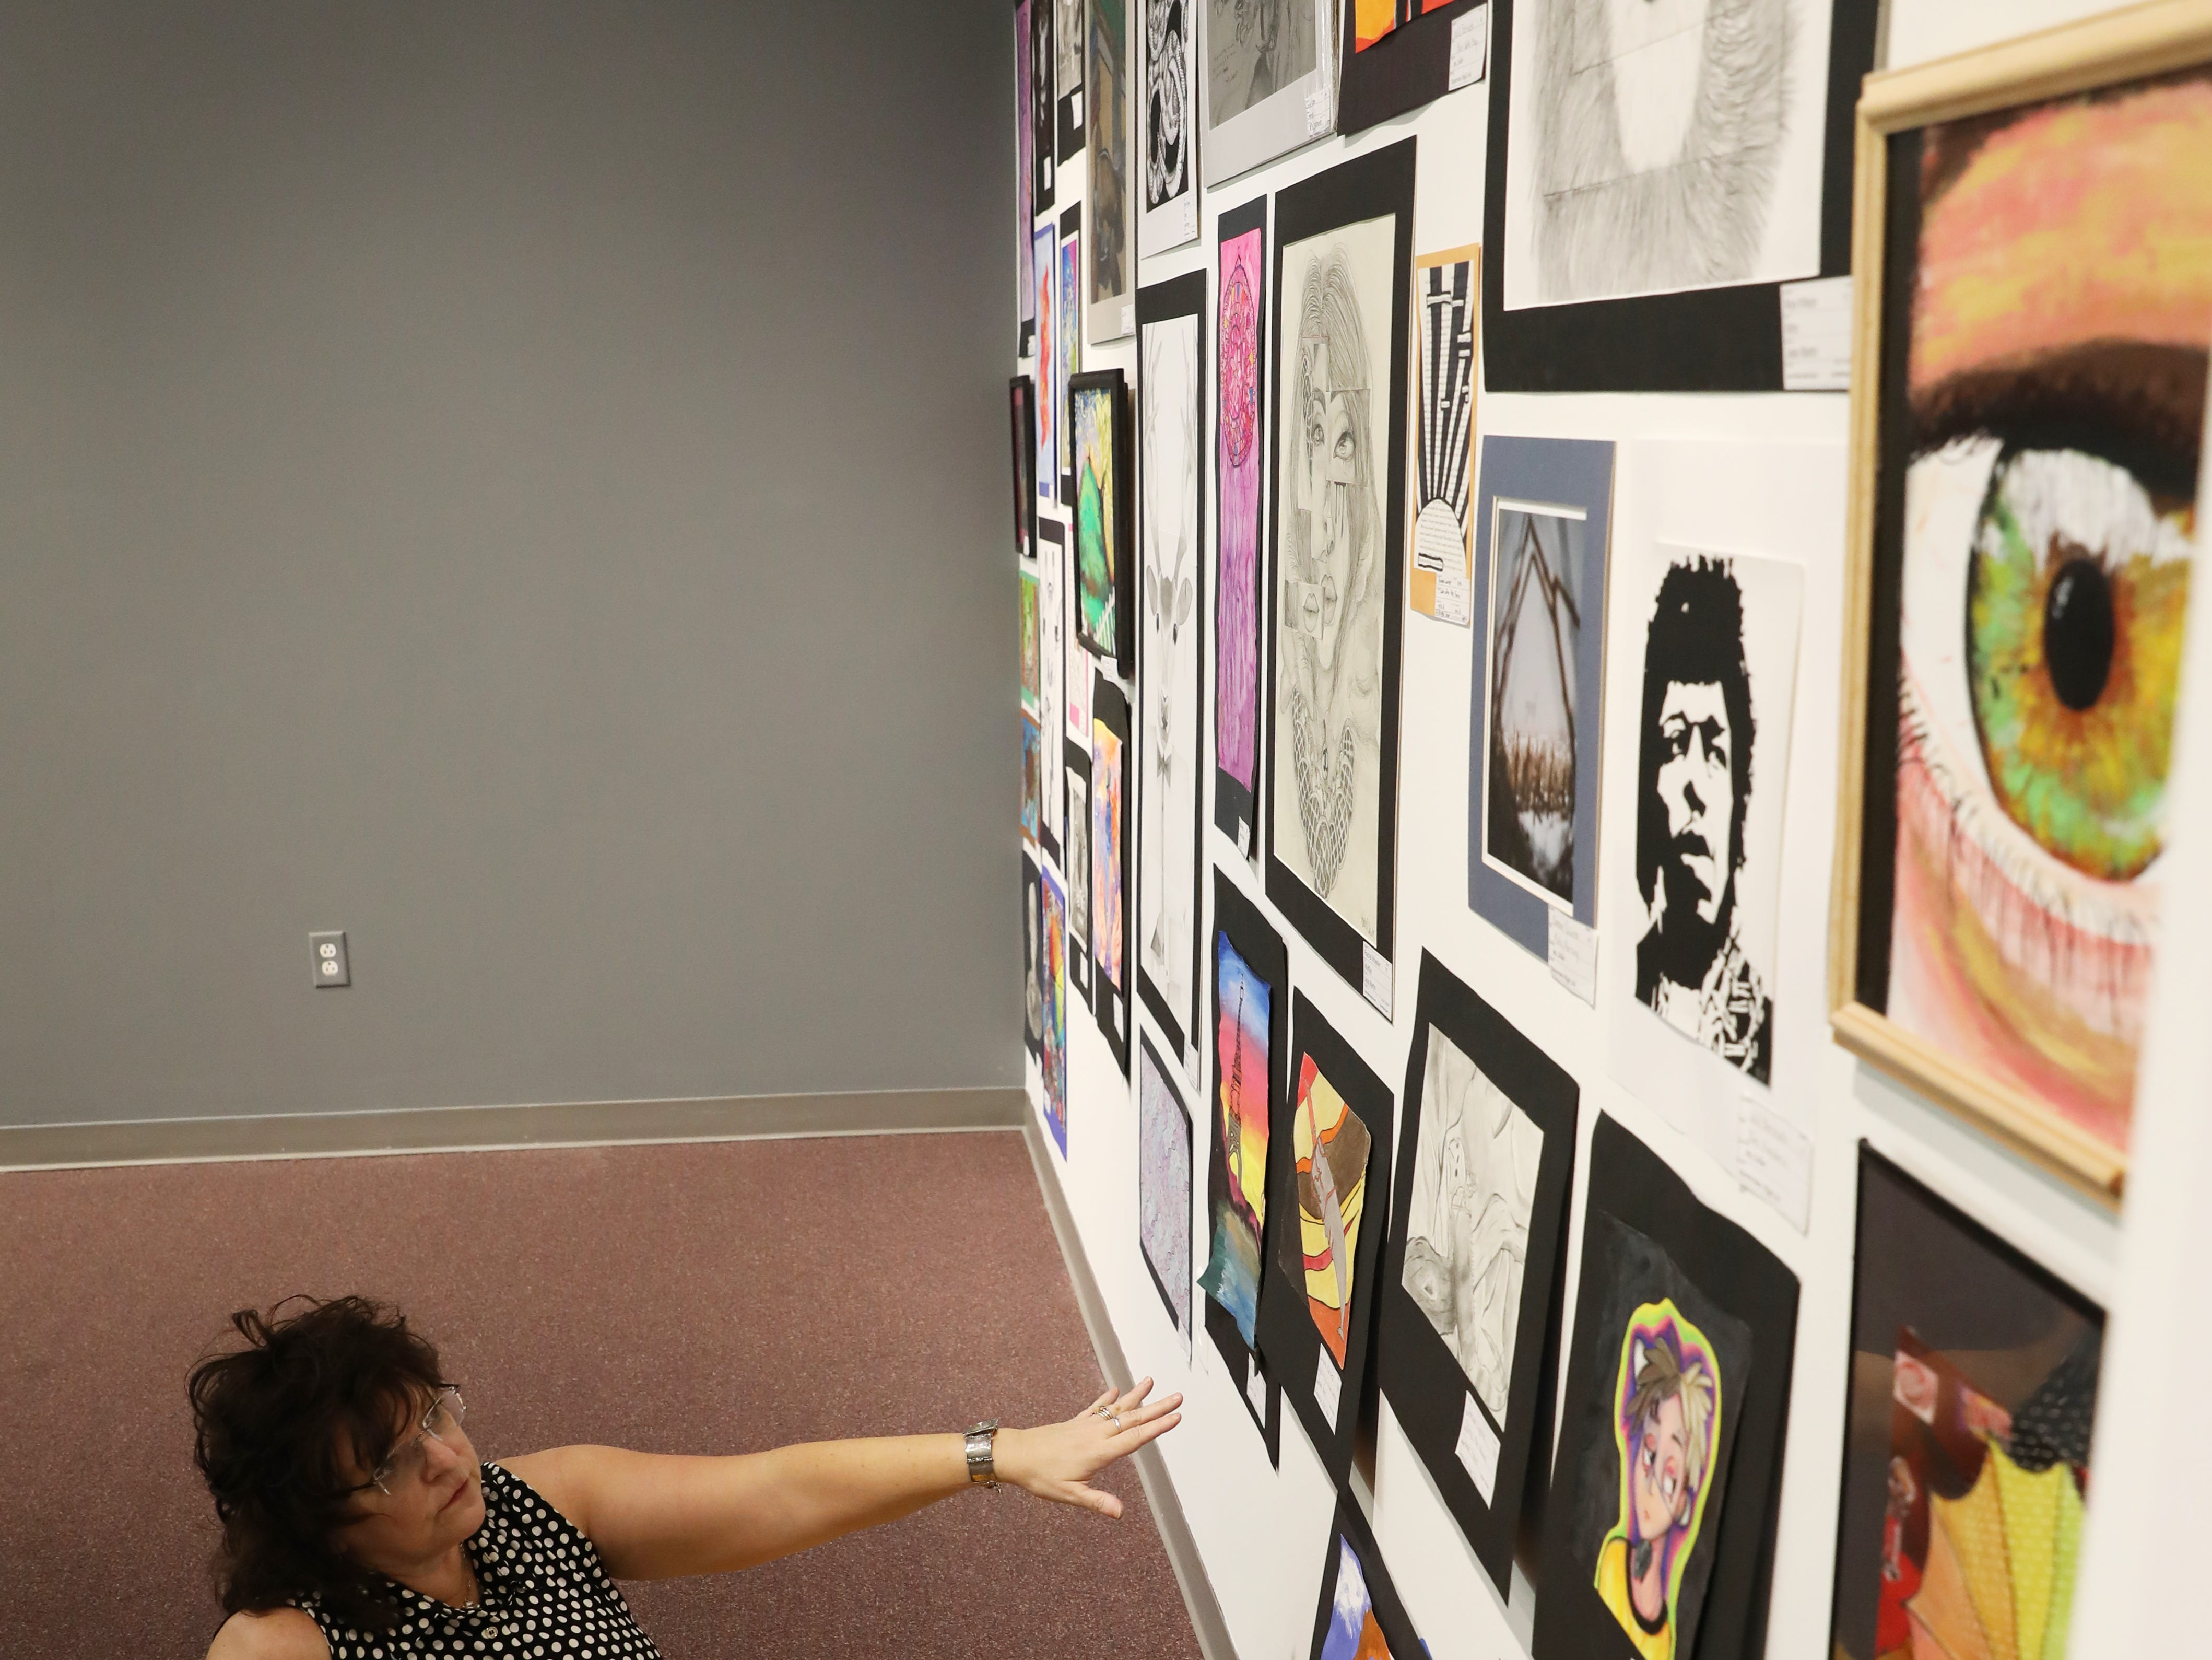 Peggy Gilchrist considers where to hang pictures while hanging art for the Muskingum County K-12 Student Art Exhibition at the Zanesville Museum of Art.